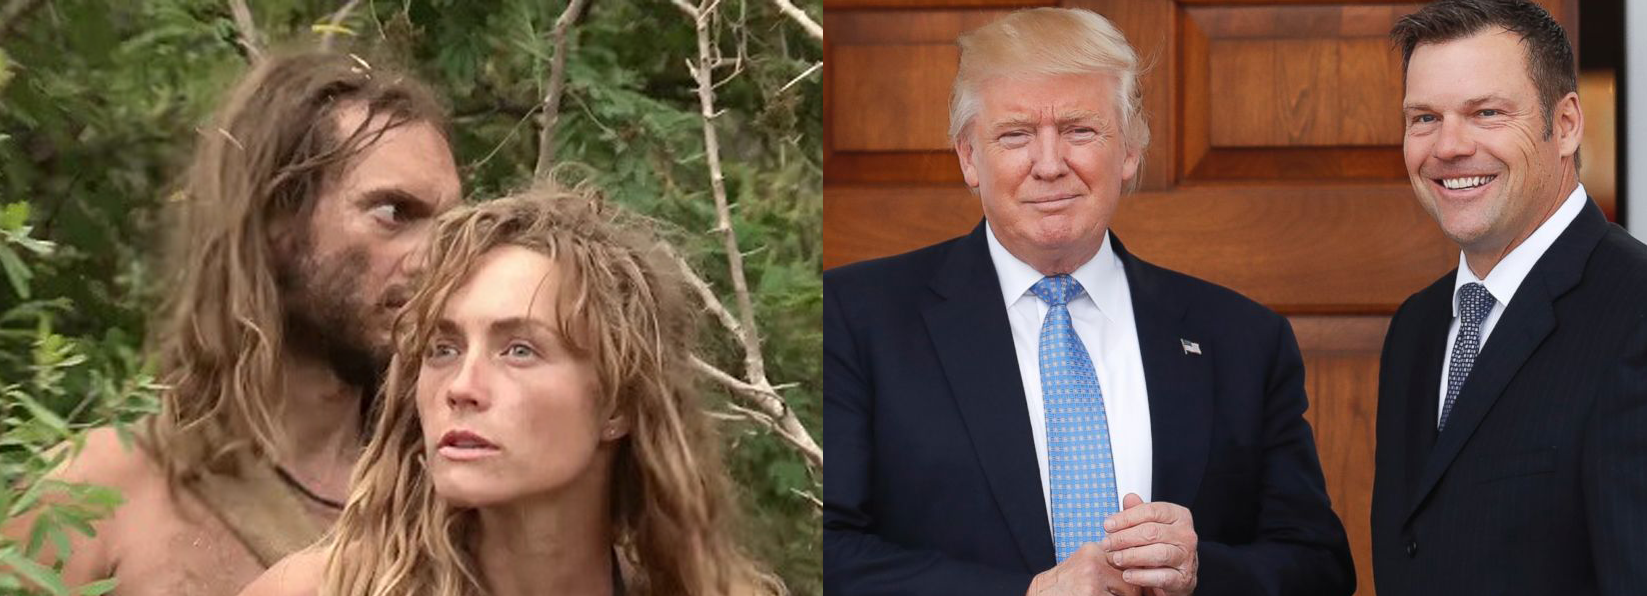 List: Quote from Survival Reality Show Naked and Afraid or Regarding President Trump's Voter Integrity Commission?